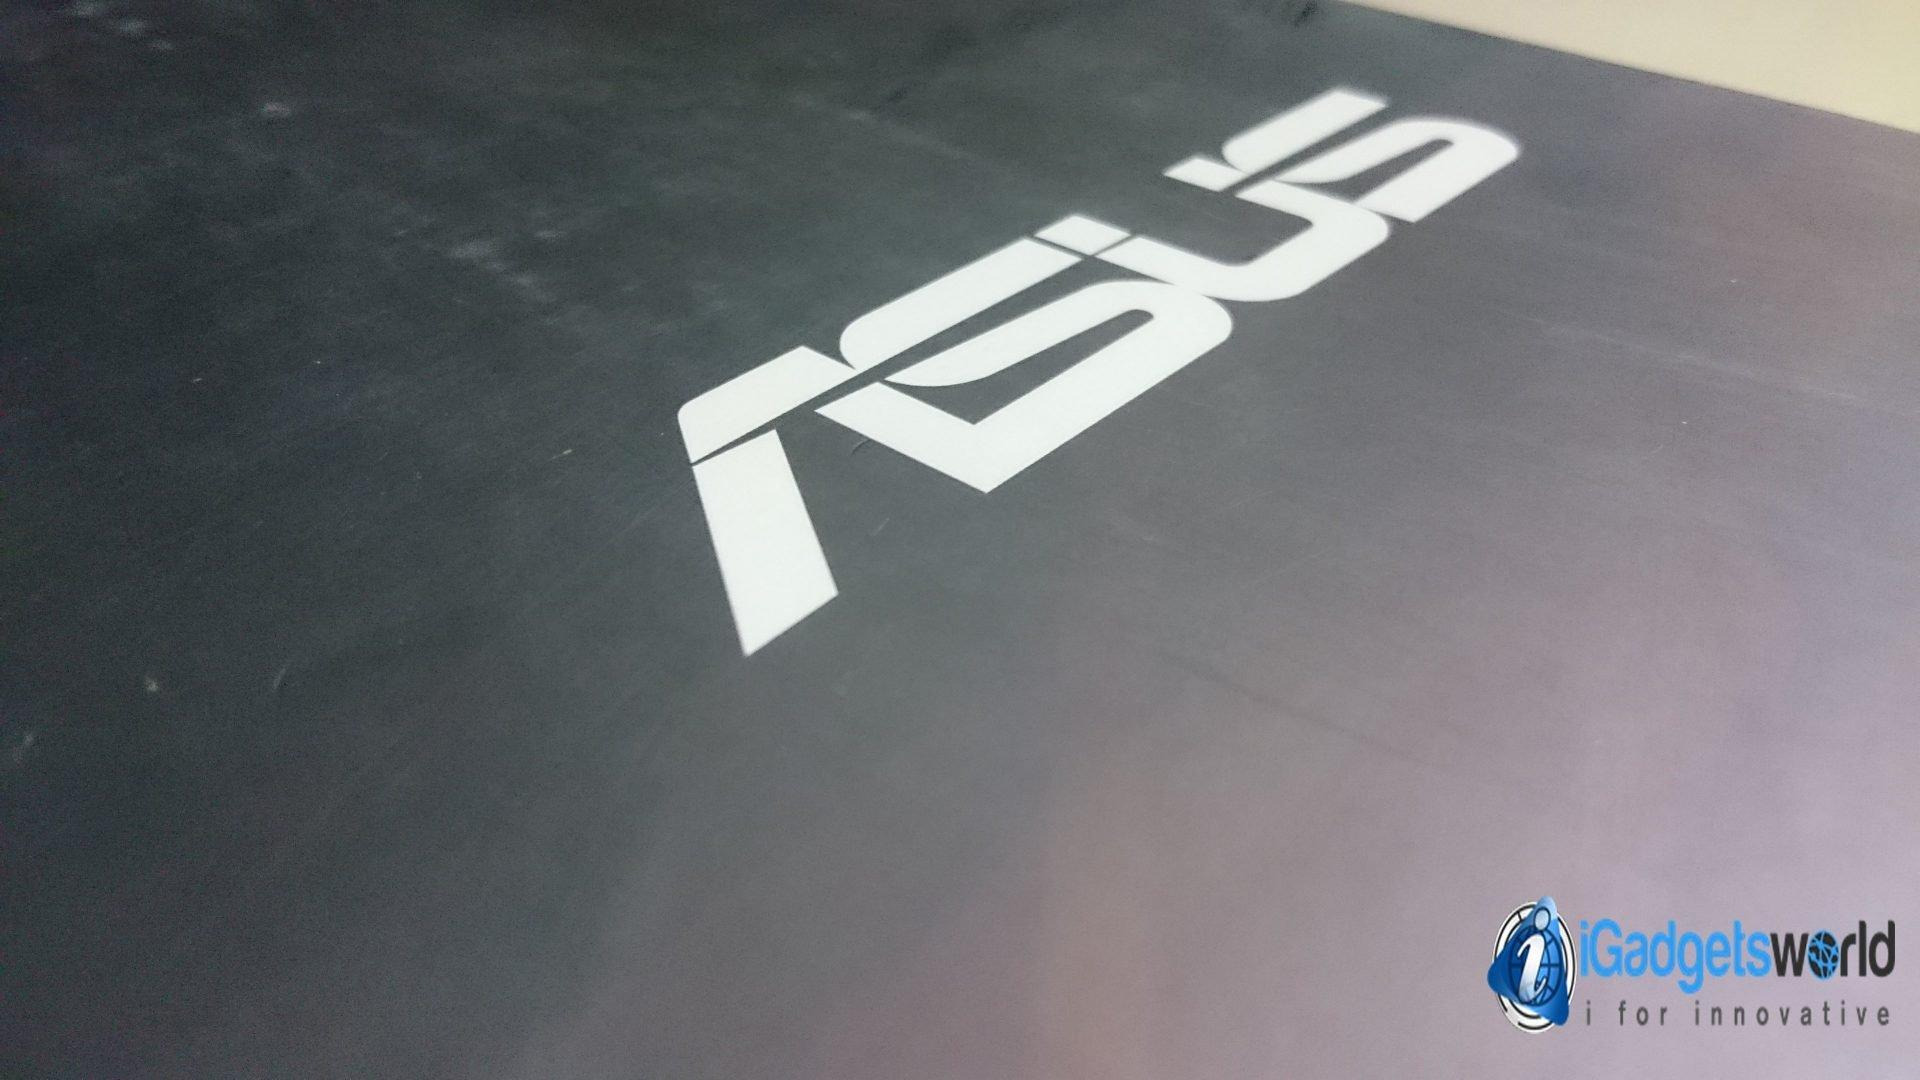 Asus ROG G751J Review: A Slightly Overpriced Ultra High-End Gaming Laptop - 5